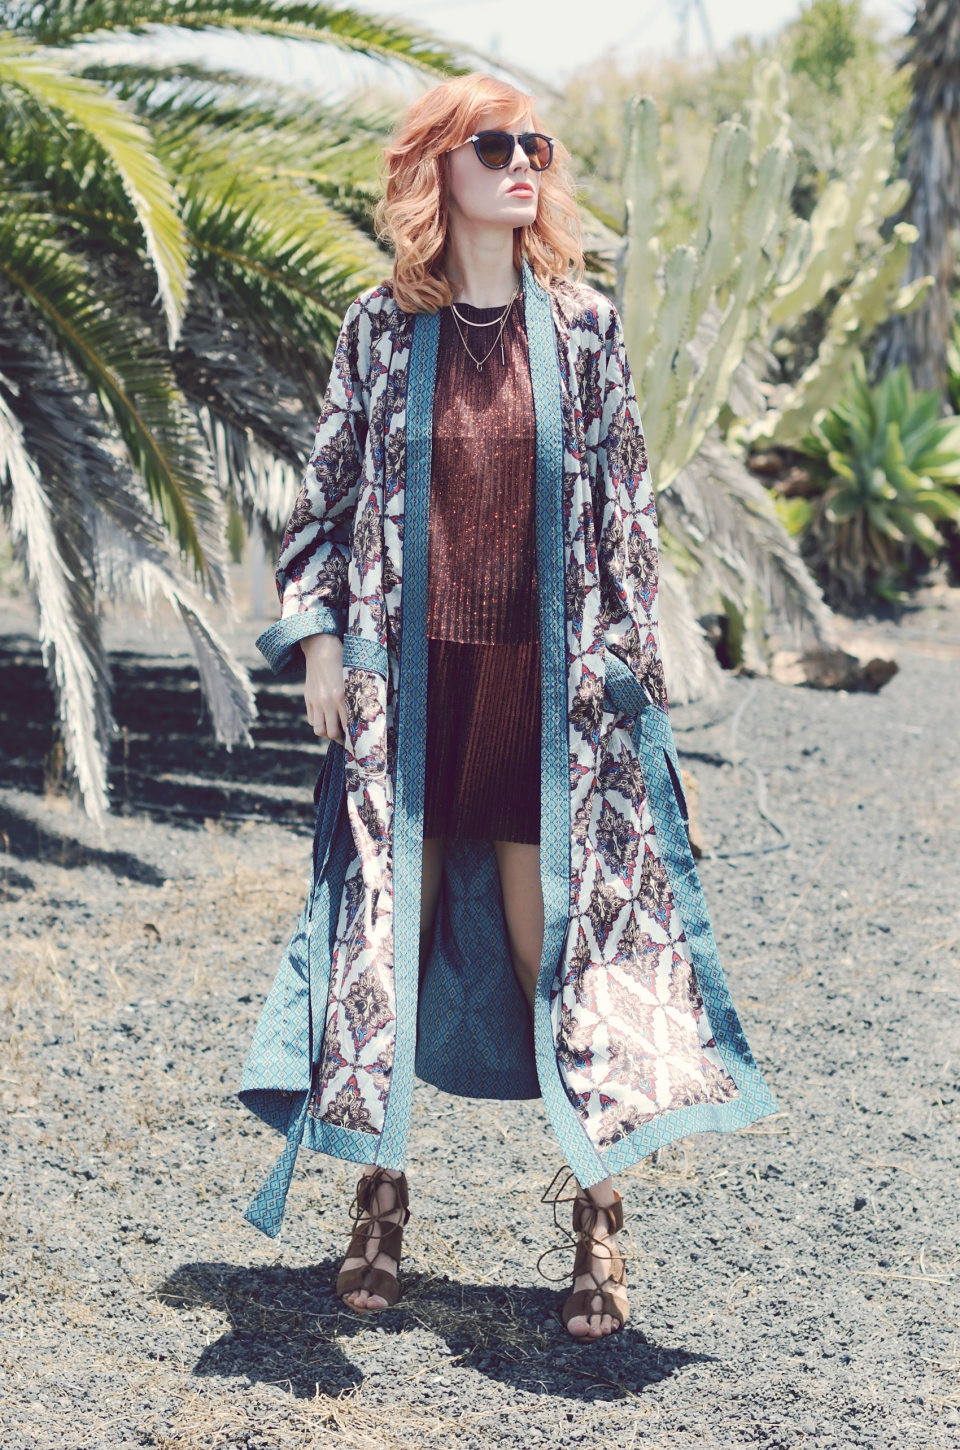 kimono style coat, turquoise, red two piece suit, sunglasses